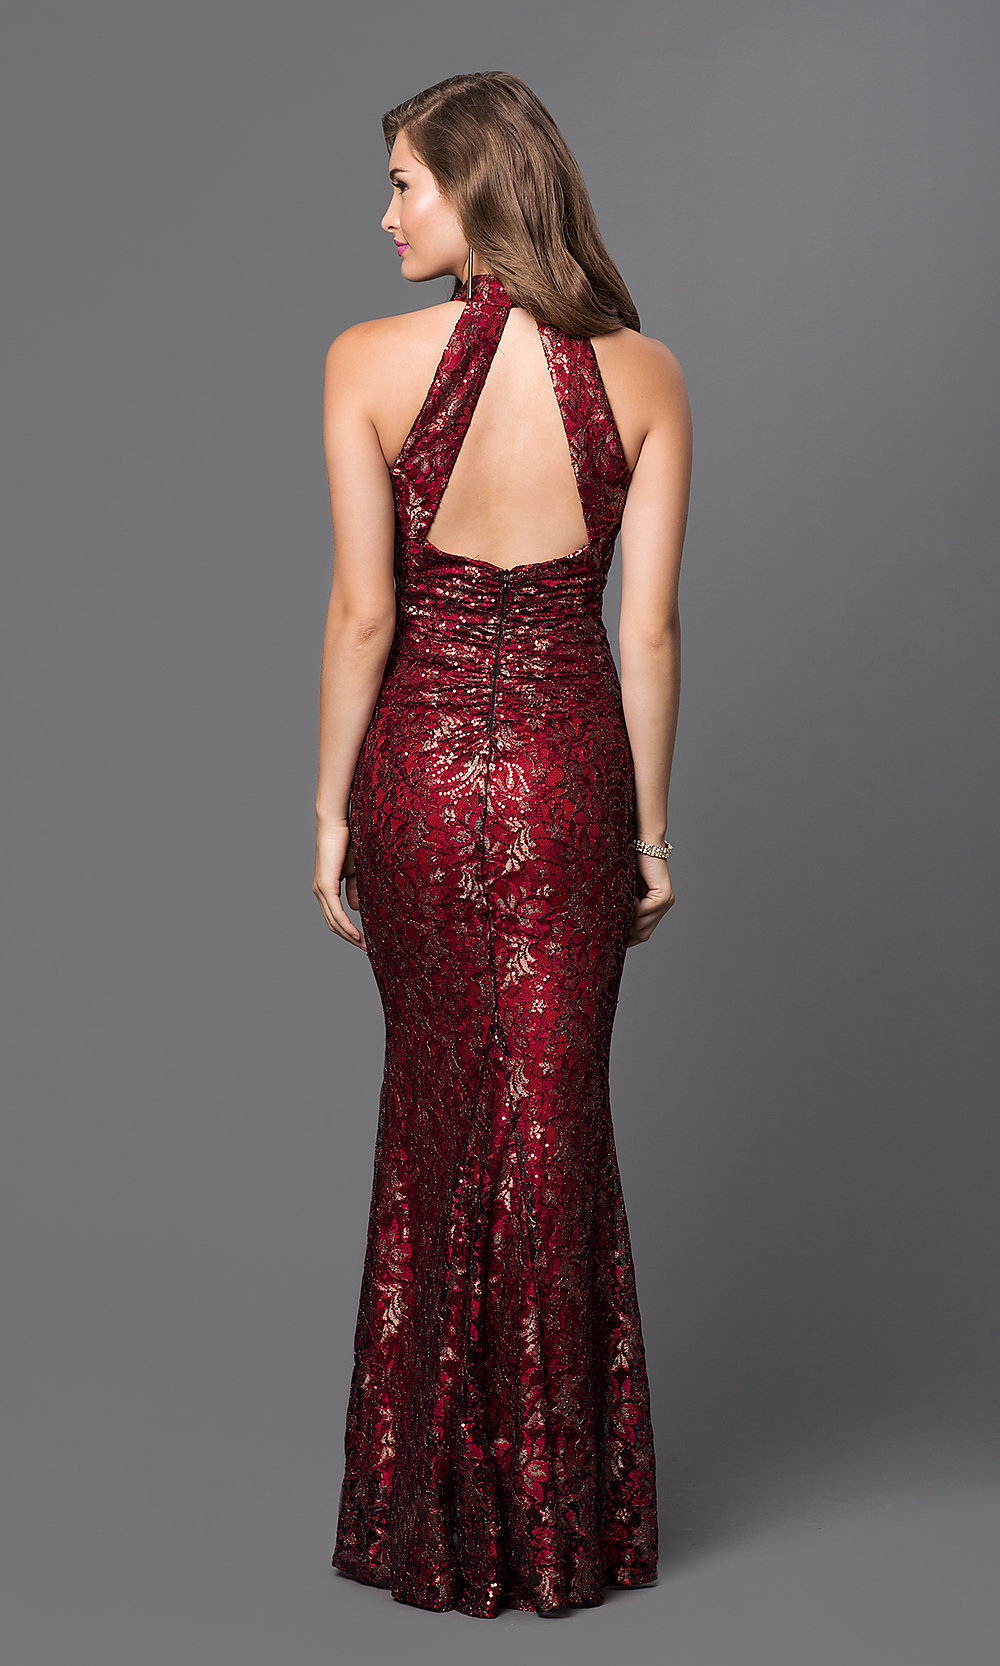 Prom Dresses Celebrity Dresses Sexy Evening Gowns: TW-4221